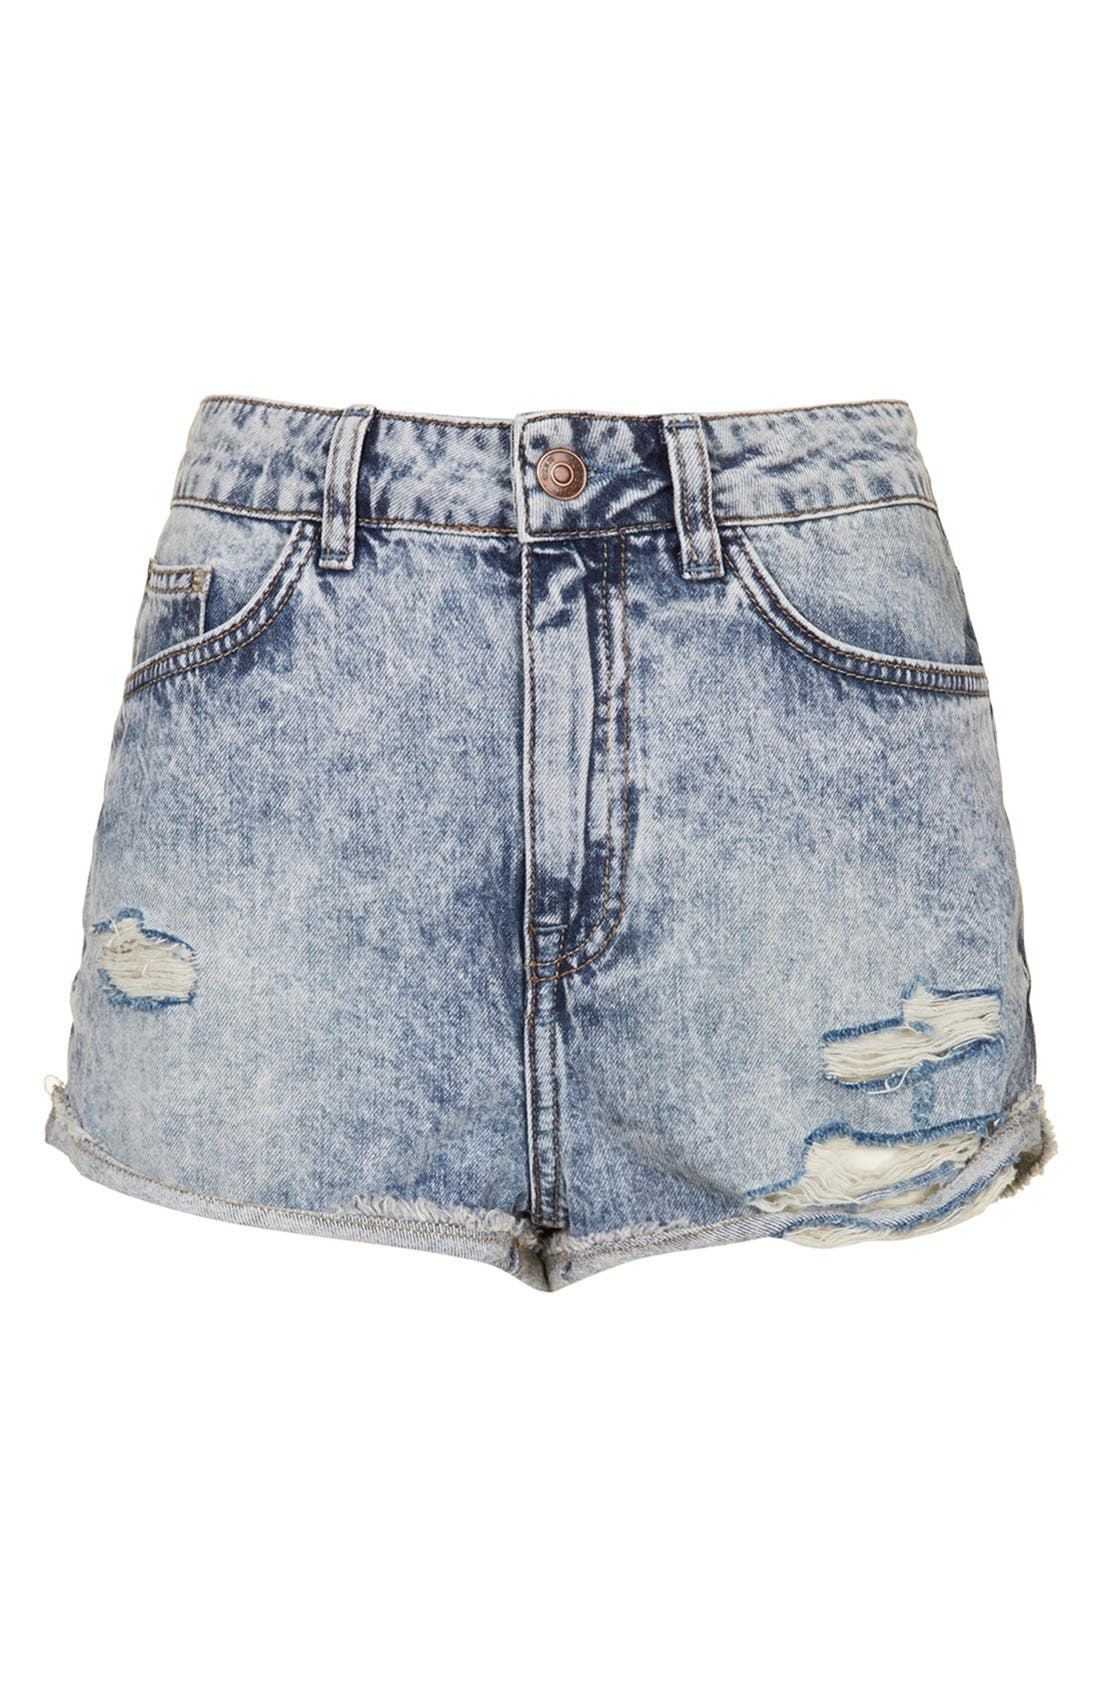 Alternate Image 3  - Topshop Moto 'Hallie' Acid Wash Denim Shorts (Light Denim)